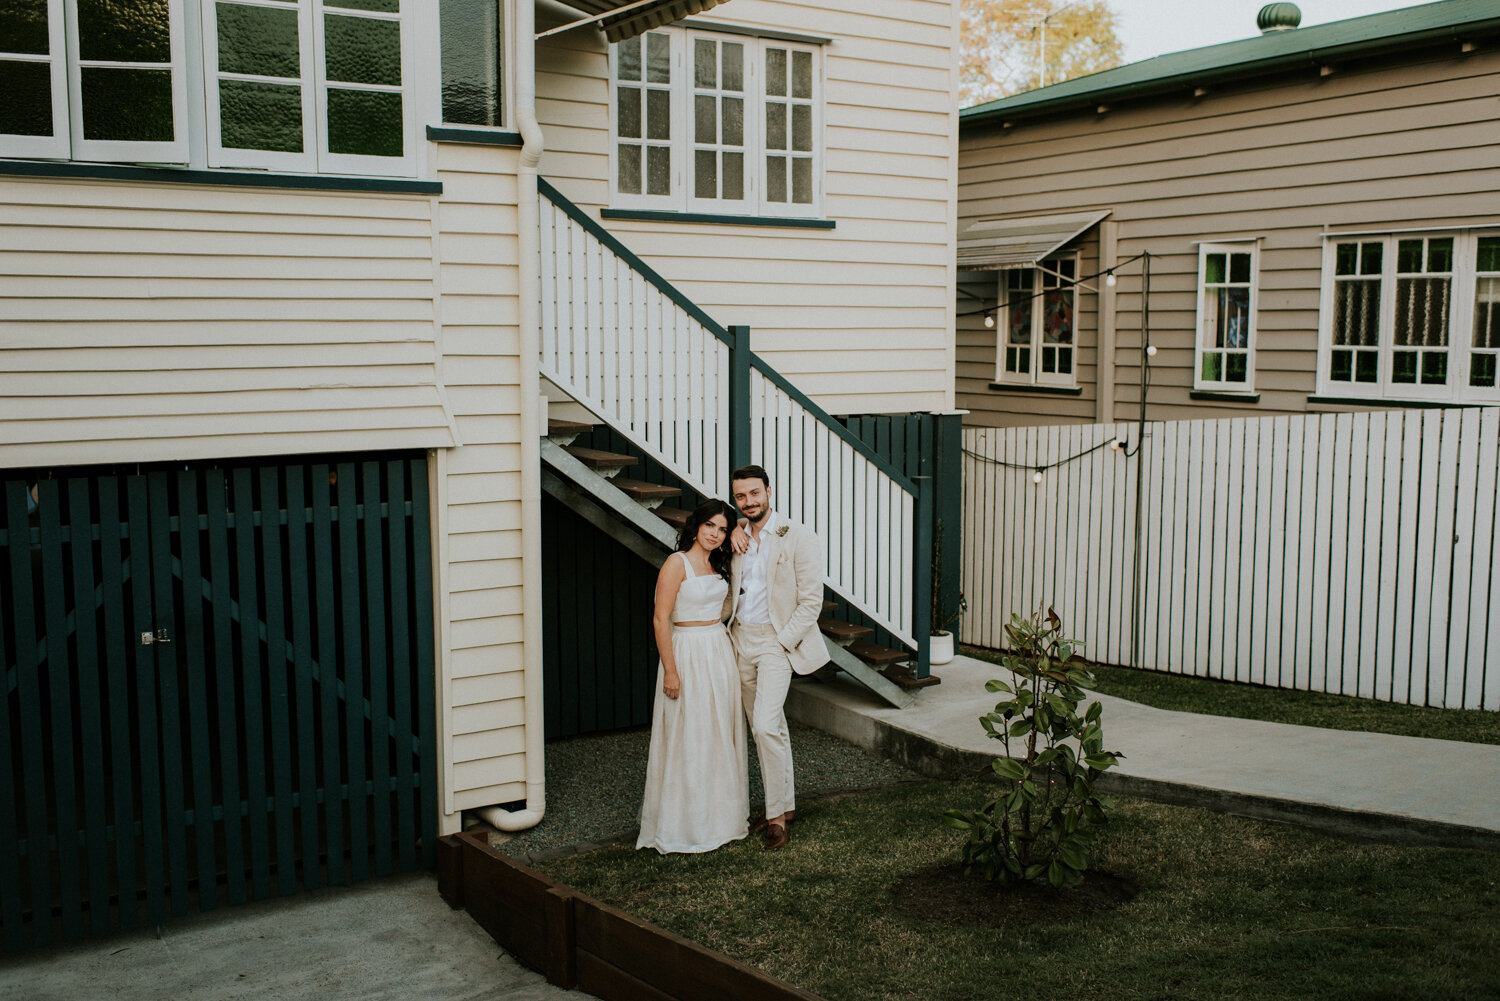 Brisbane Wedding Photographer | Engagement-Elopement Photography-61.jpg